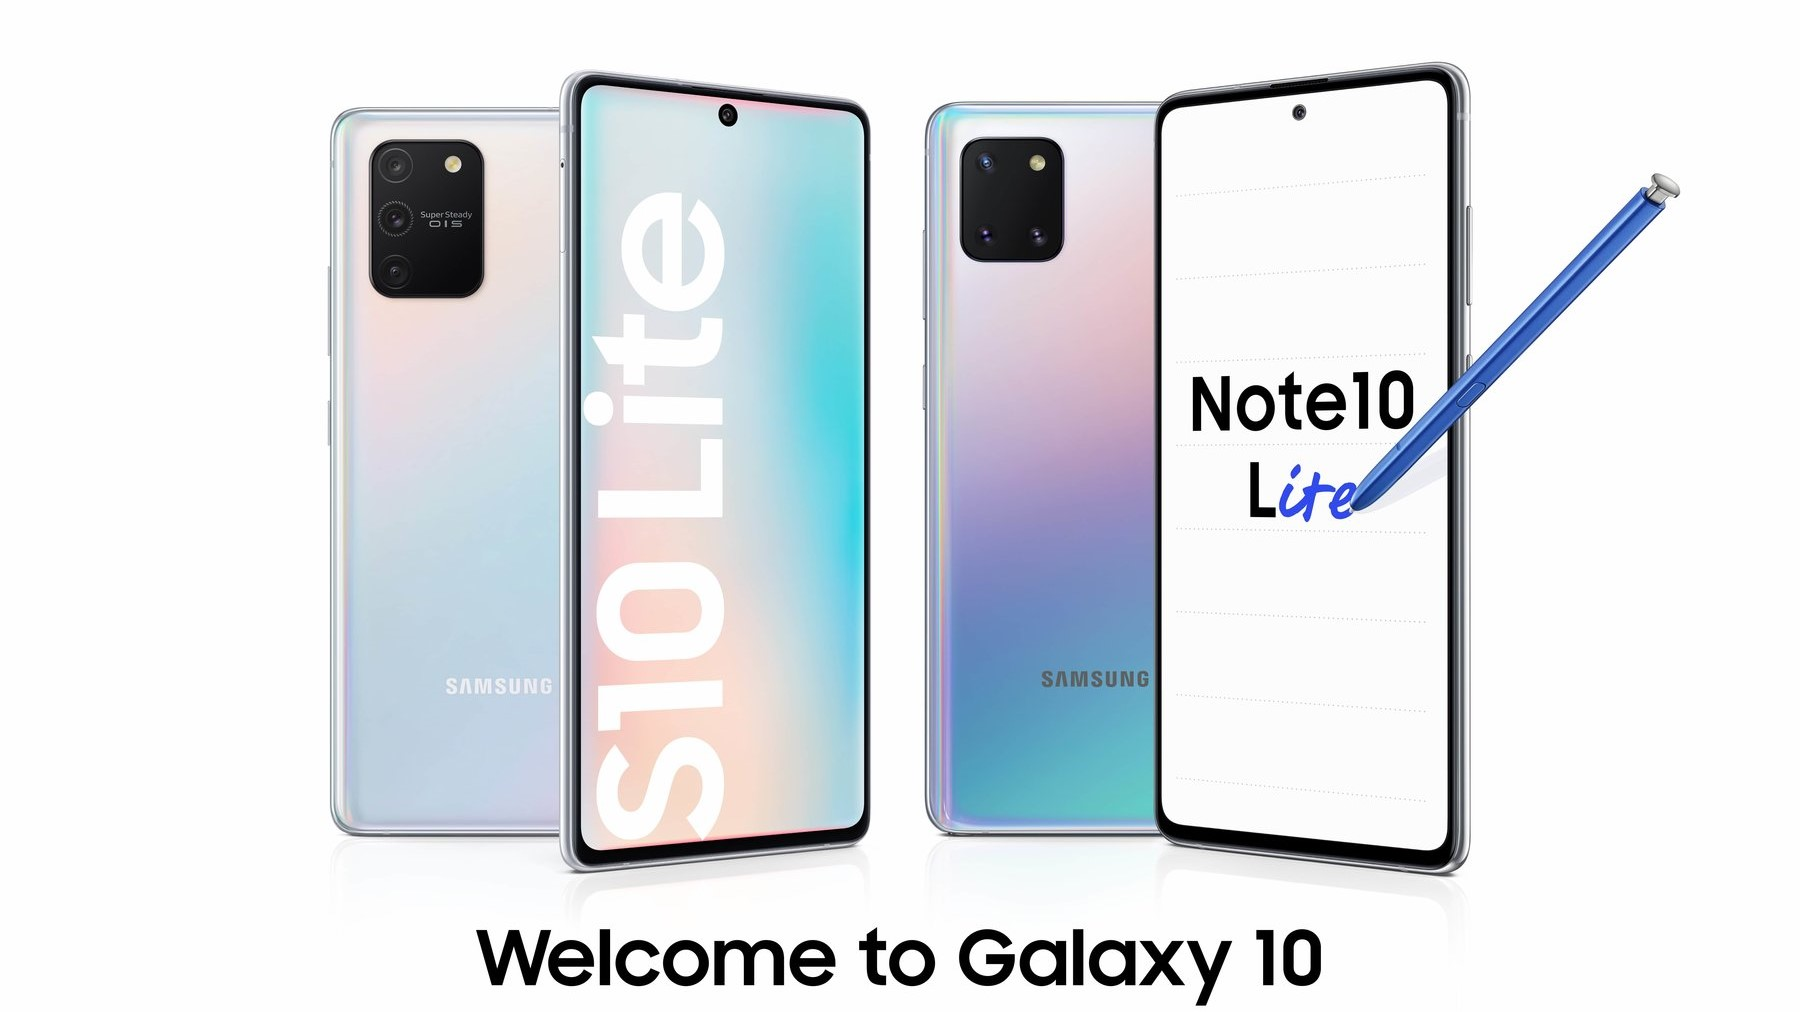 Samsung galaxy s10 lite note 10 lite are official premium features lower prices